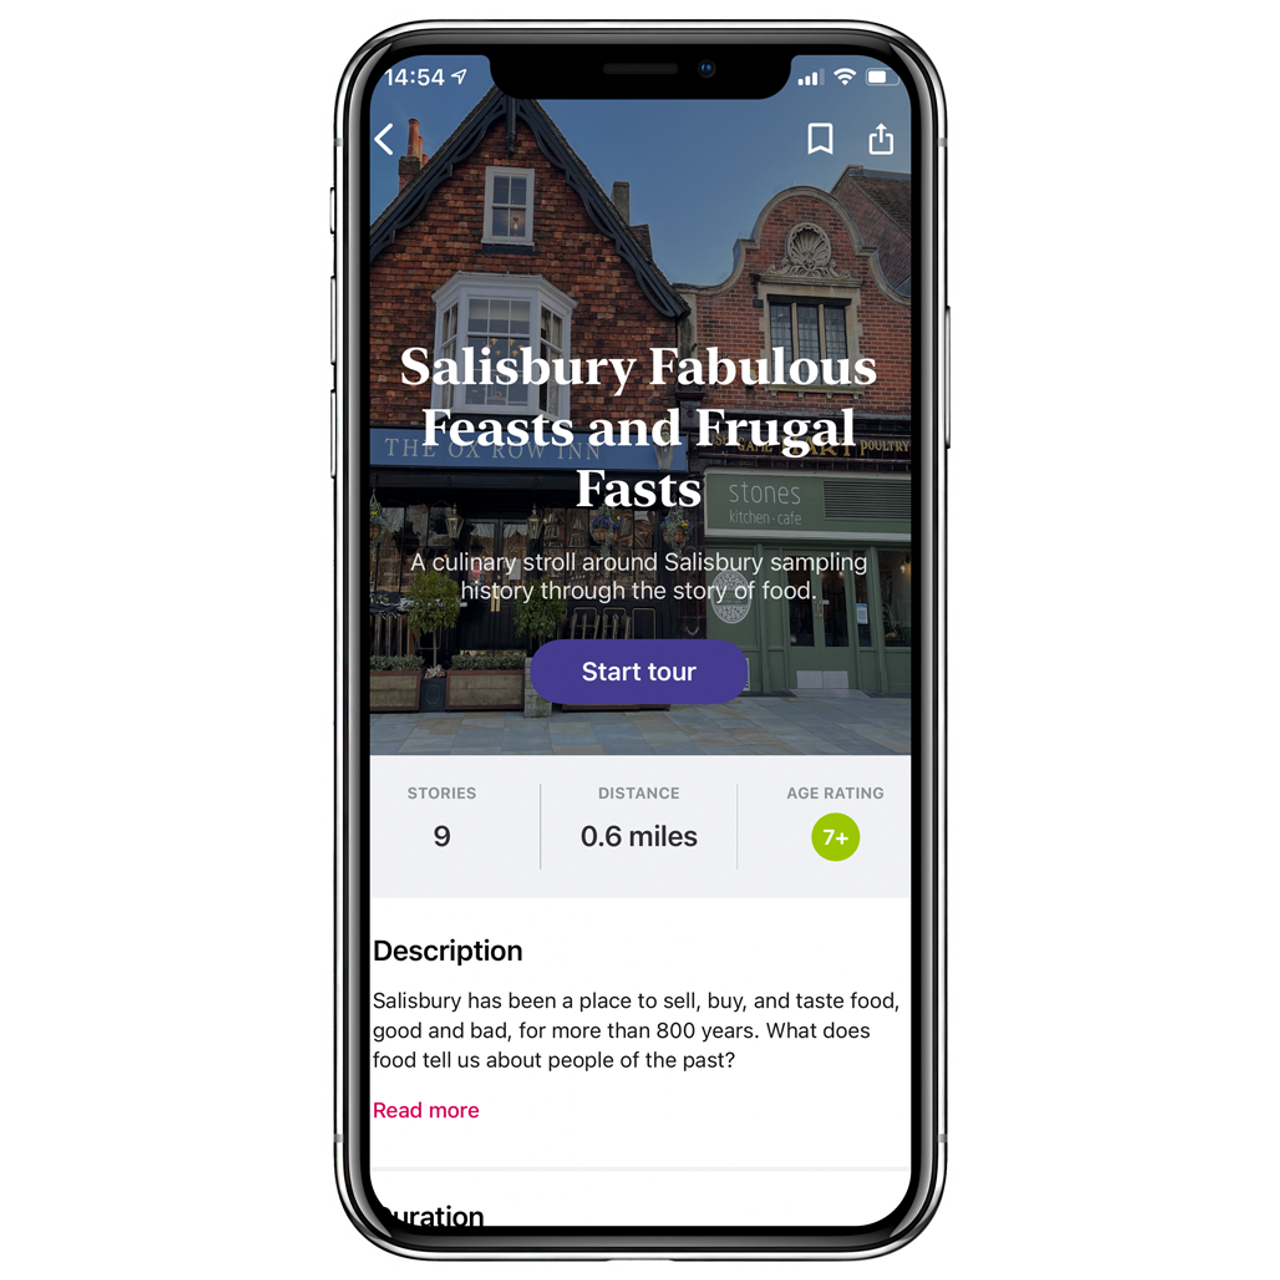 Salisbury Fabulous Feasts And Frugal Fasts Walking Tour